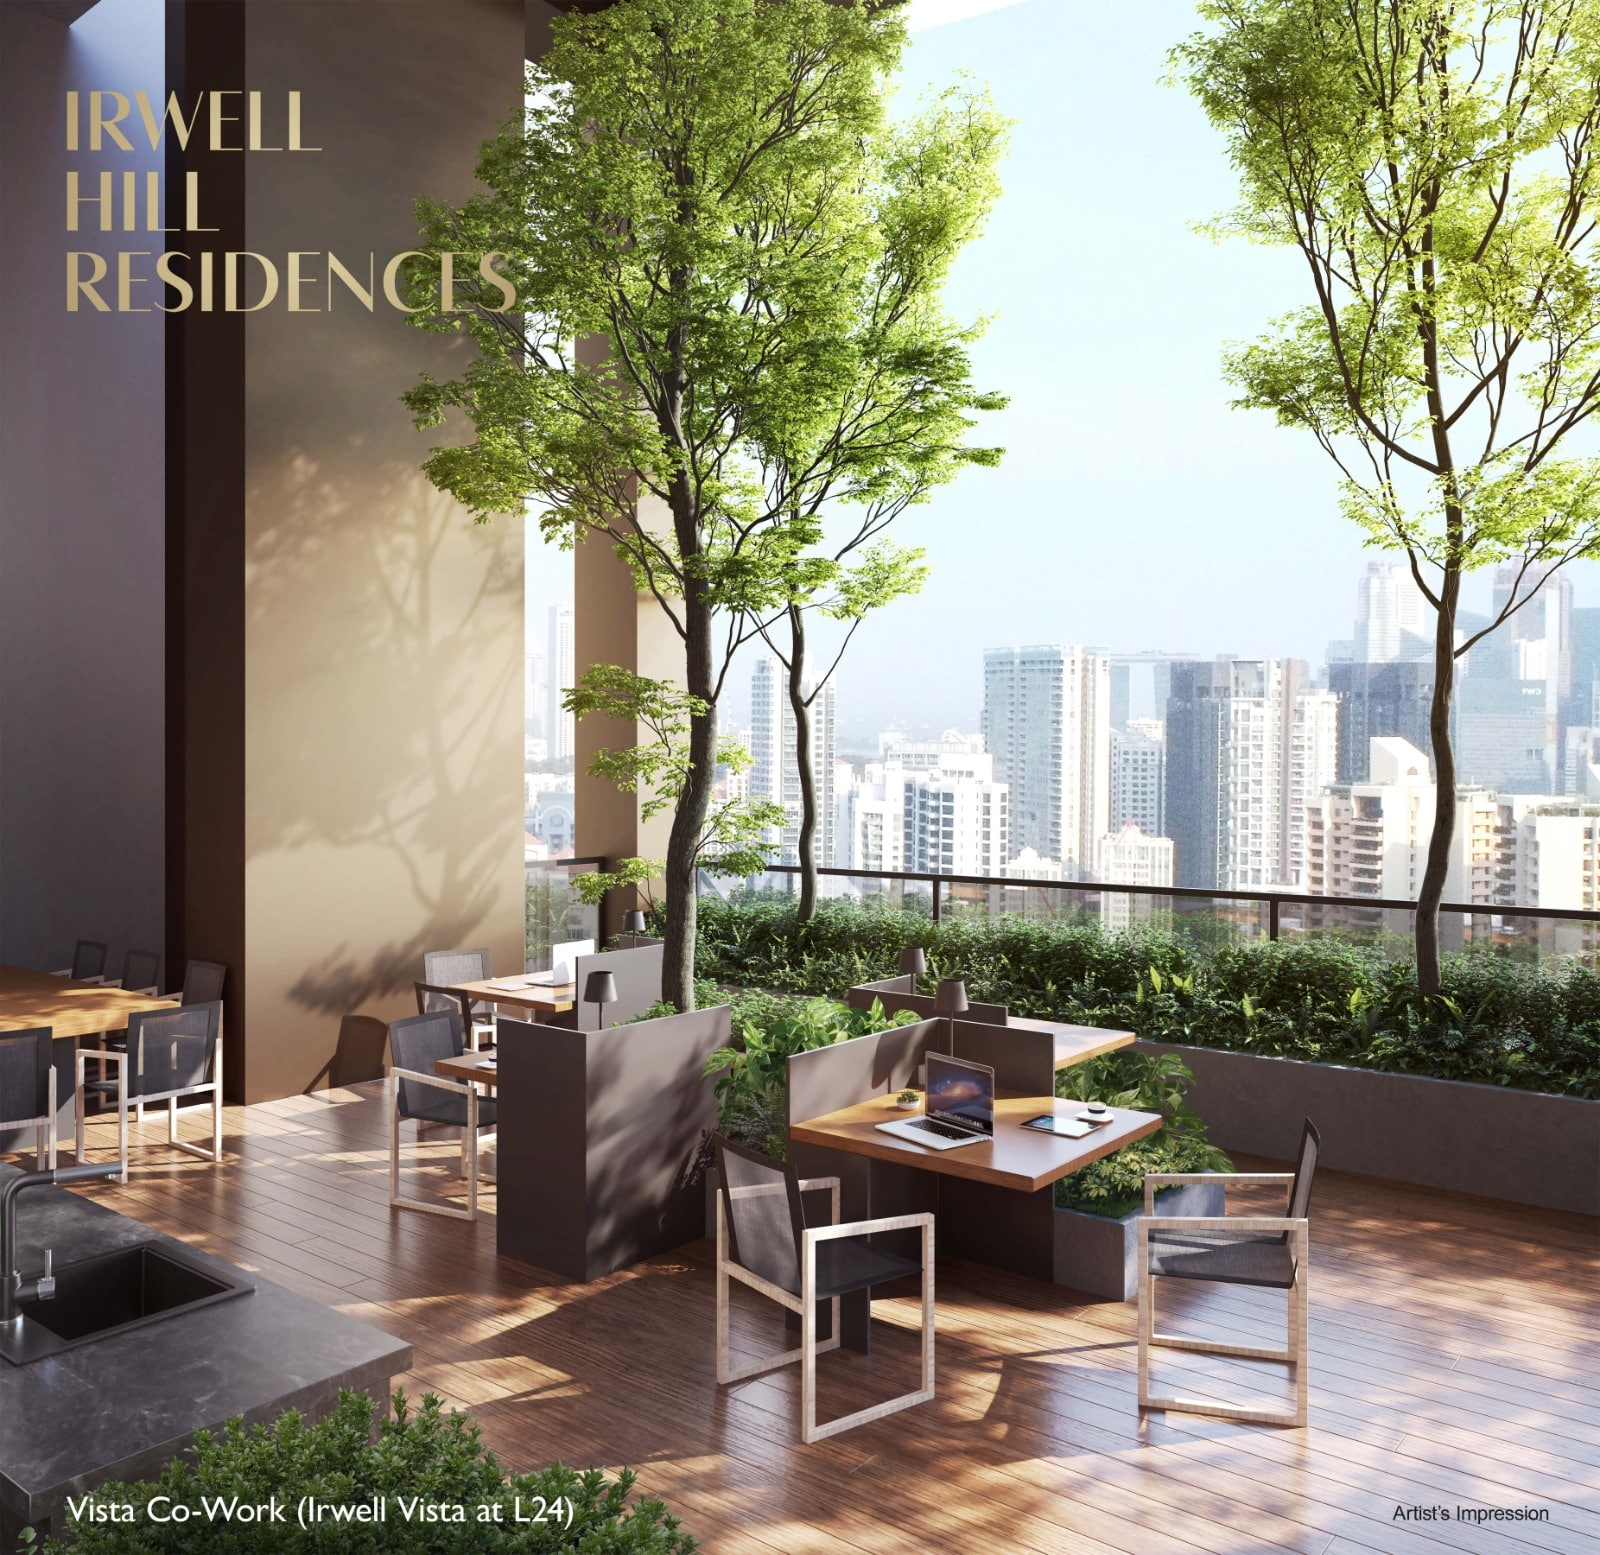 Irwell-Hill-Residences-Viewing-Lounge